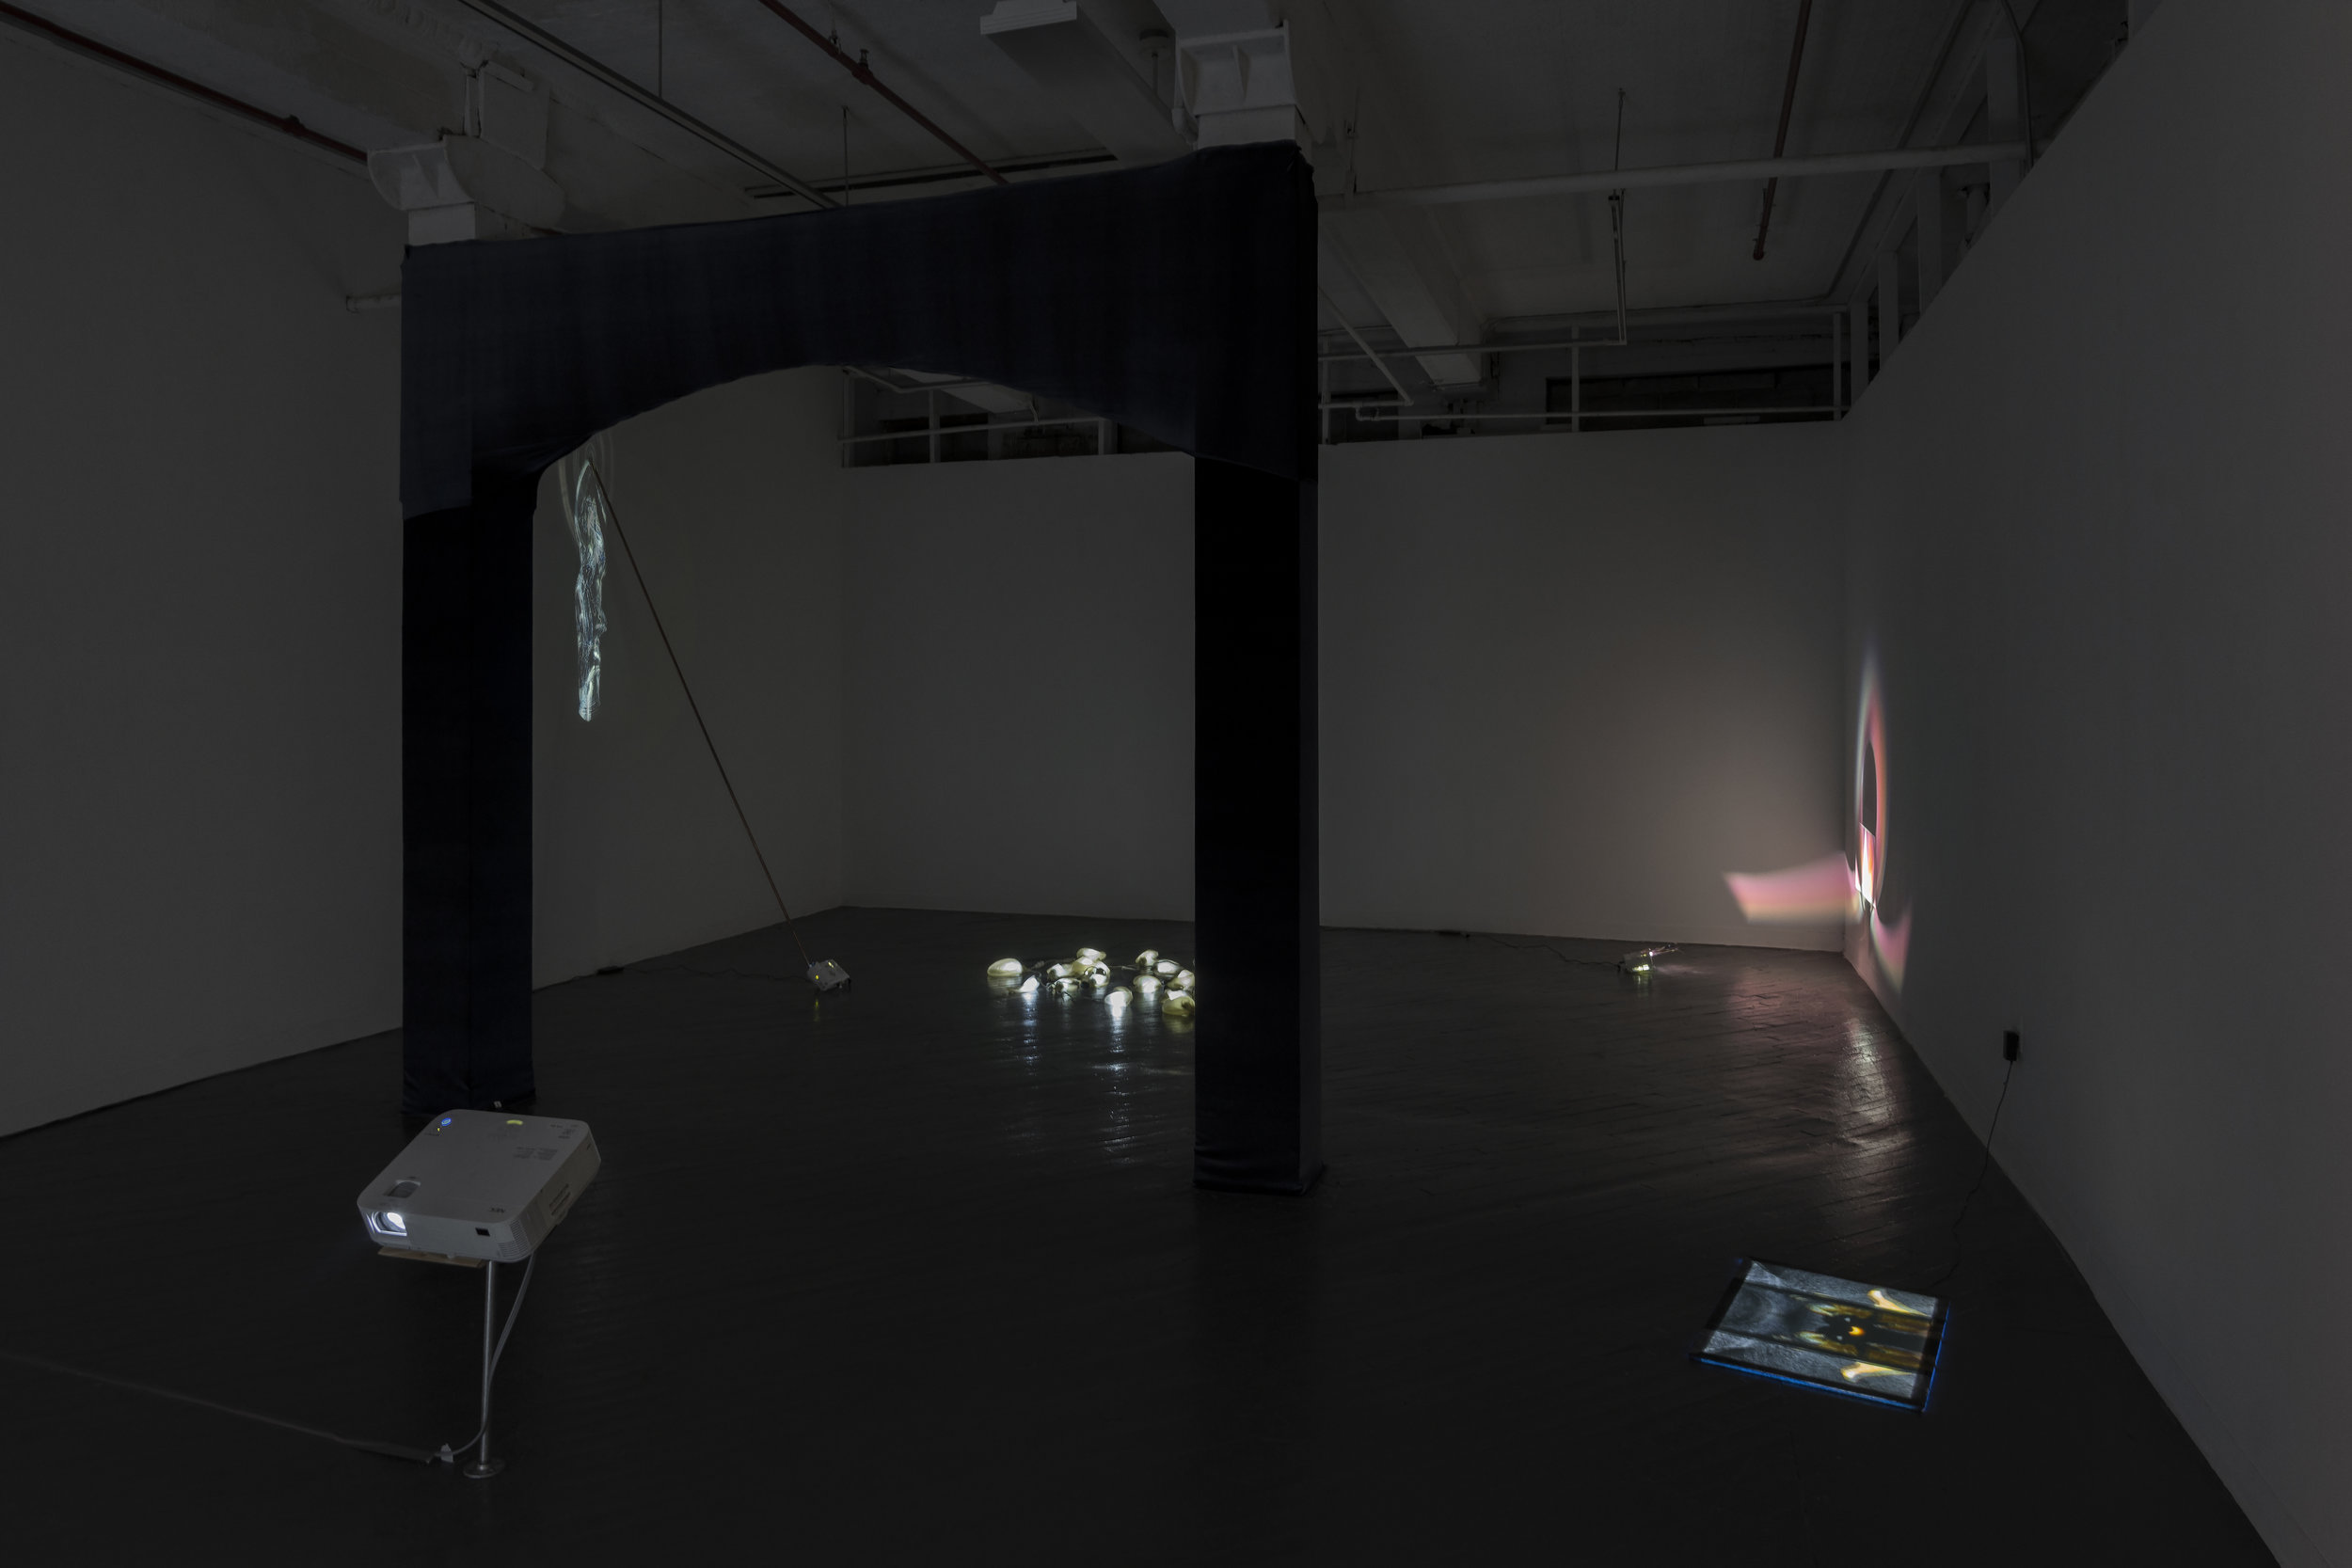 Groundwater: A Piece For Four Hands , installation view